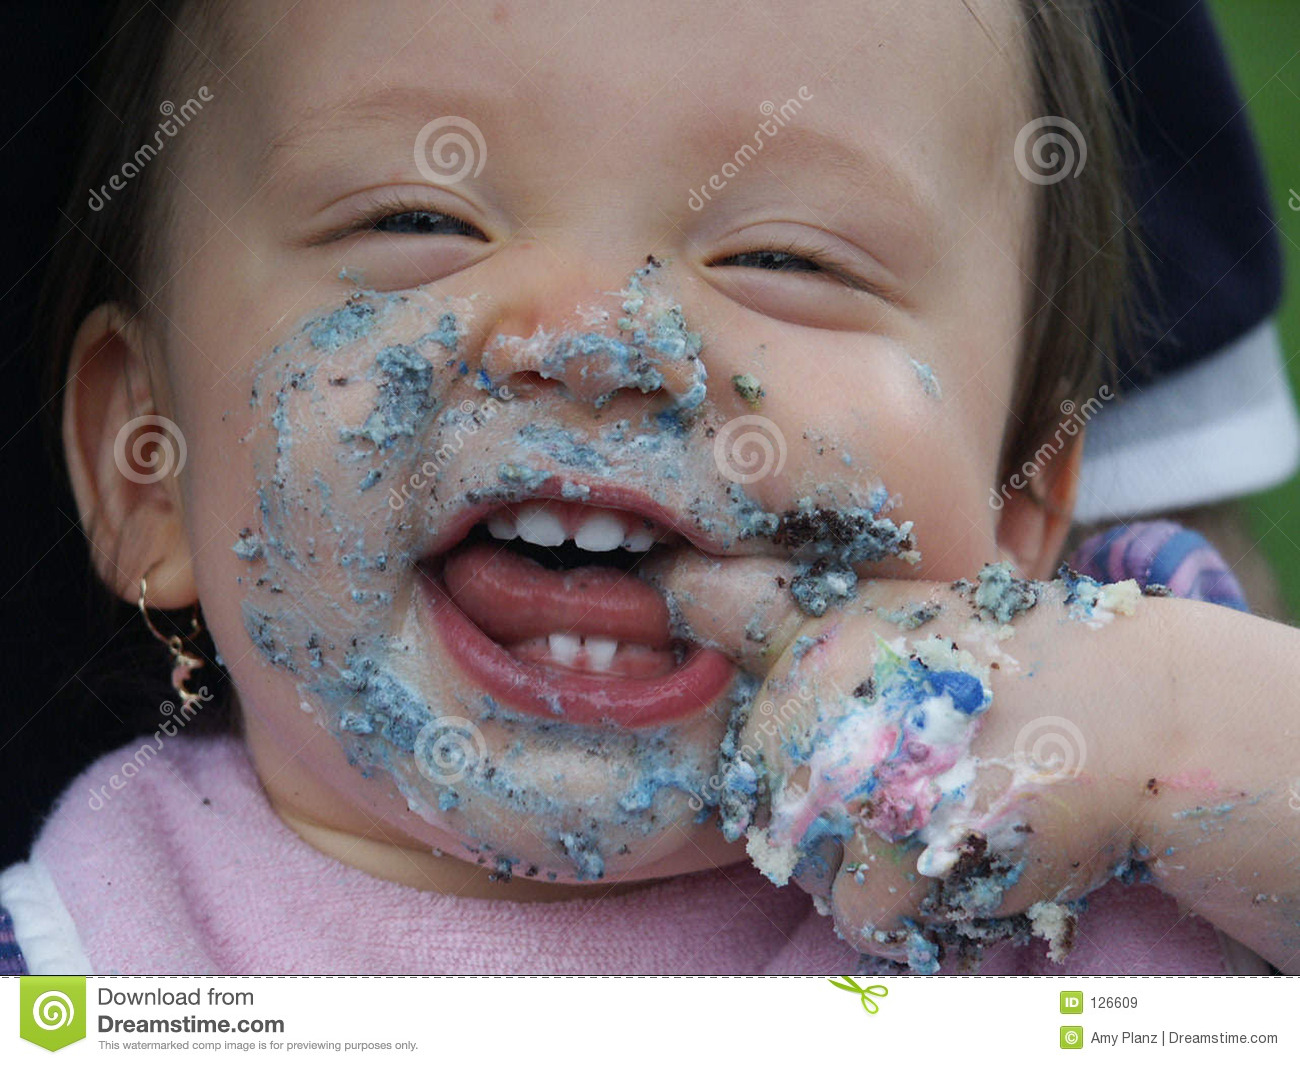 Images Cake In Face : Baby s face with cake stock image. Image of food, sweet ...